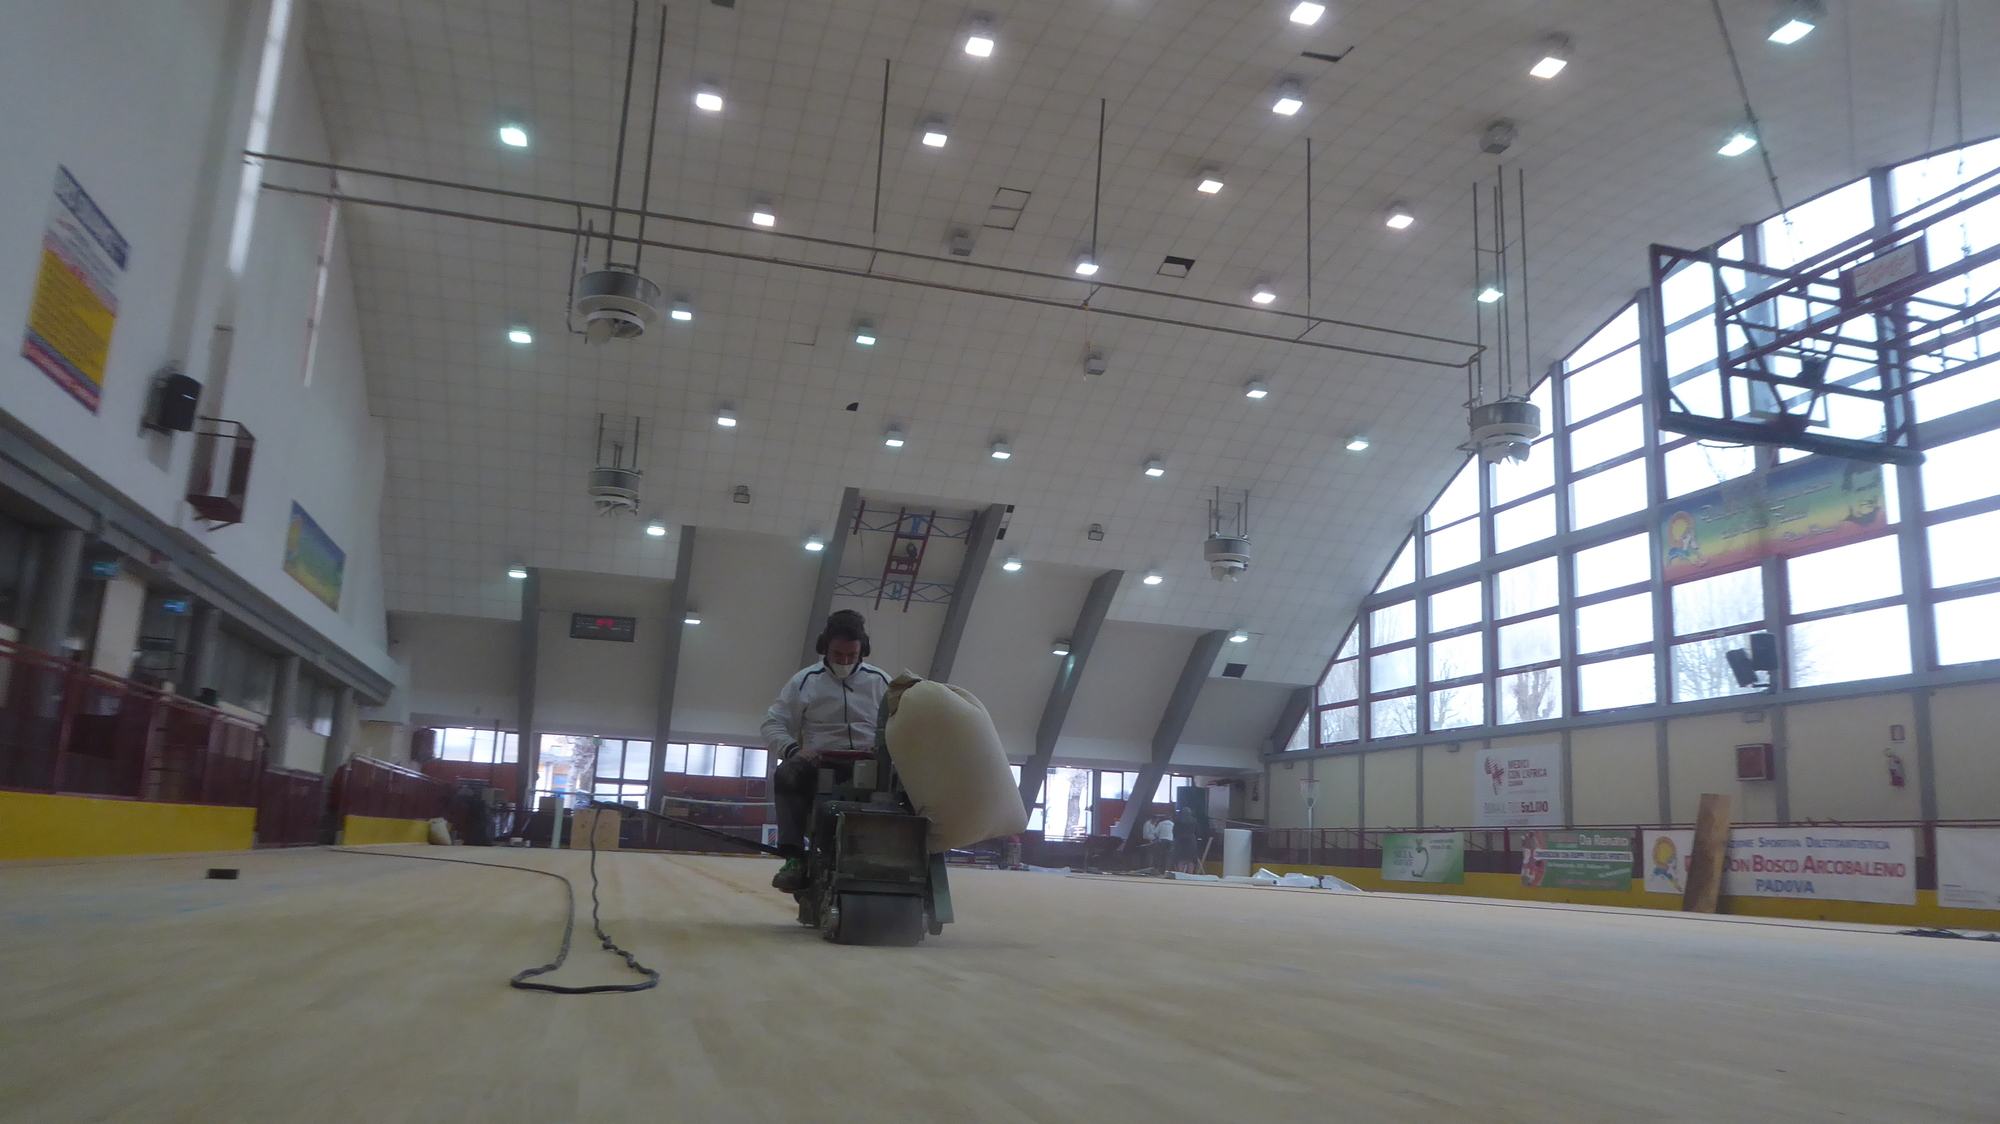 In action the sanding machine with man on board